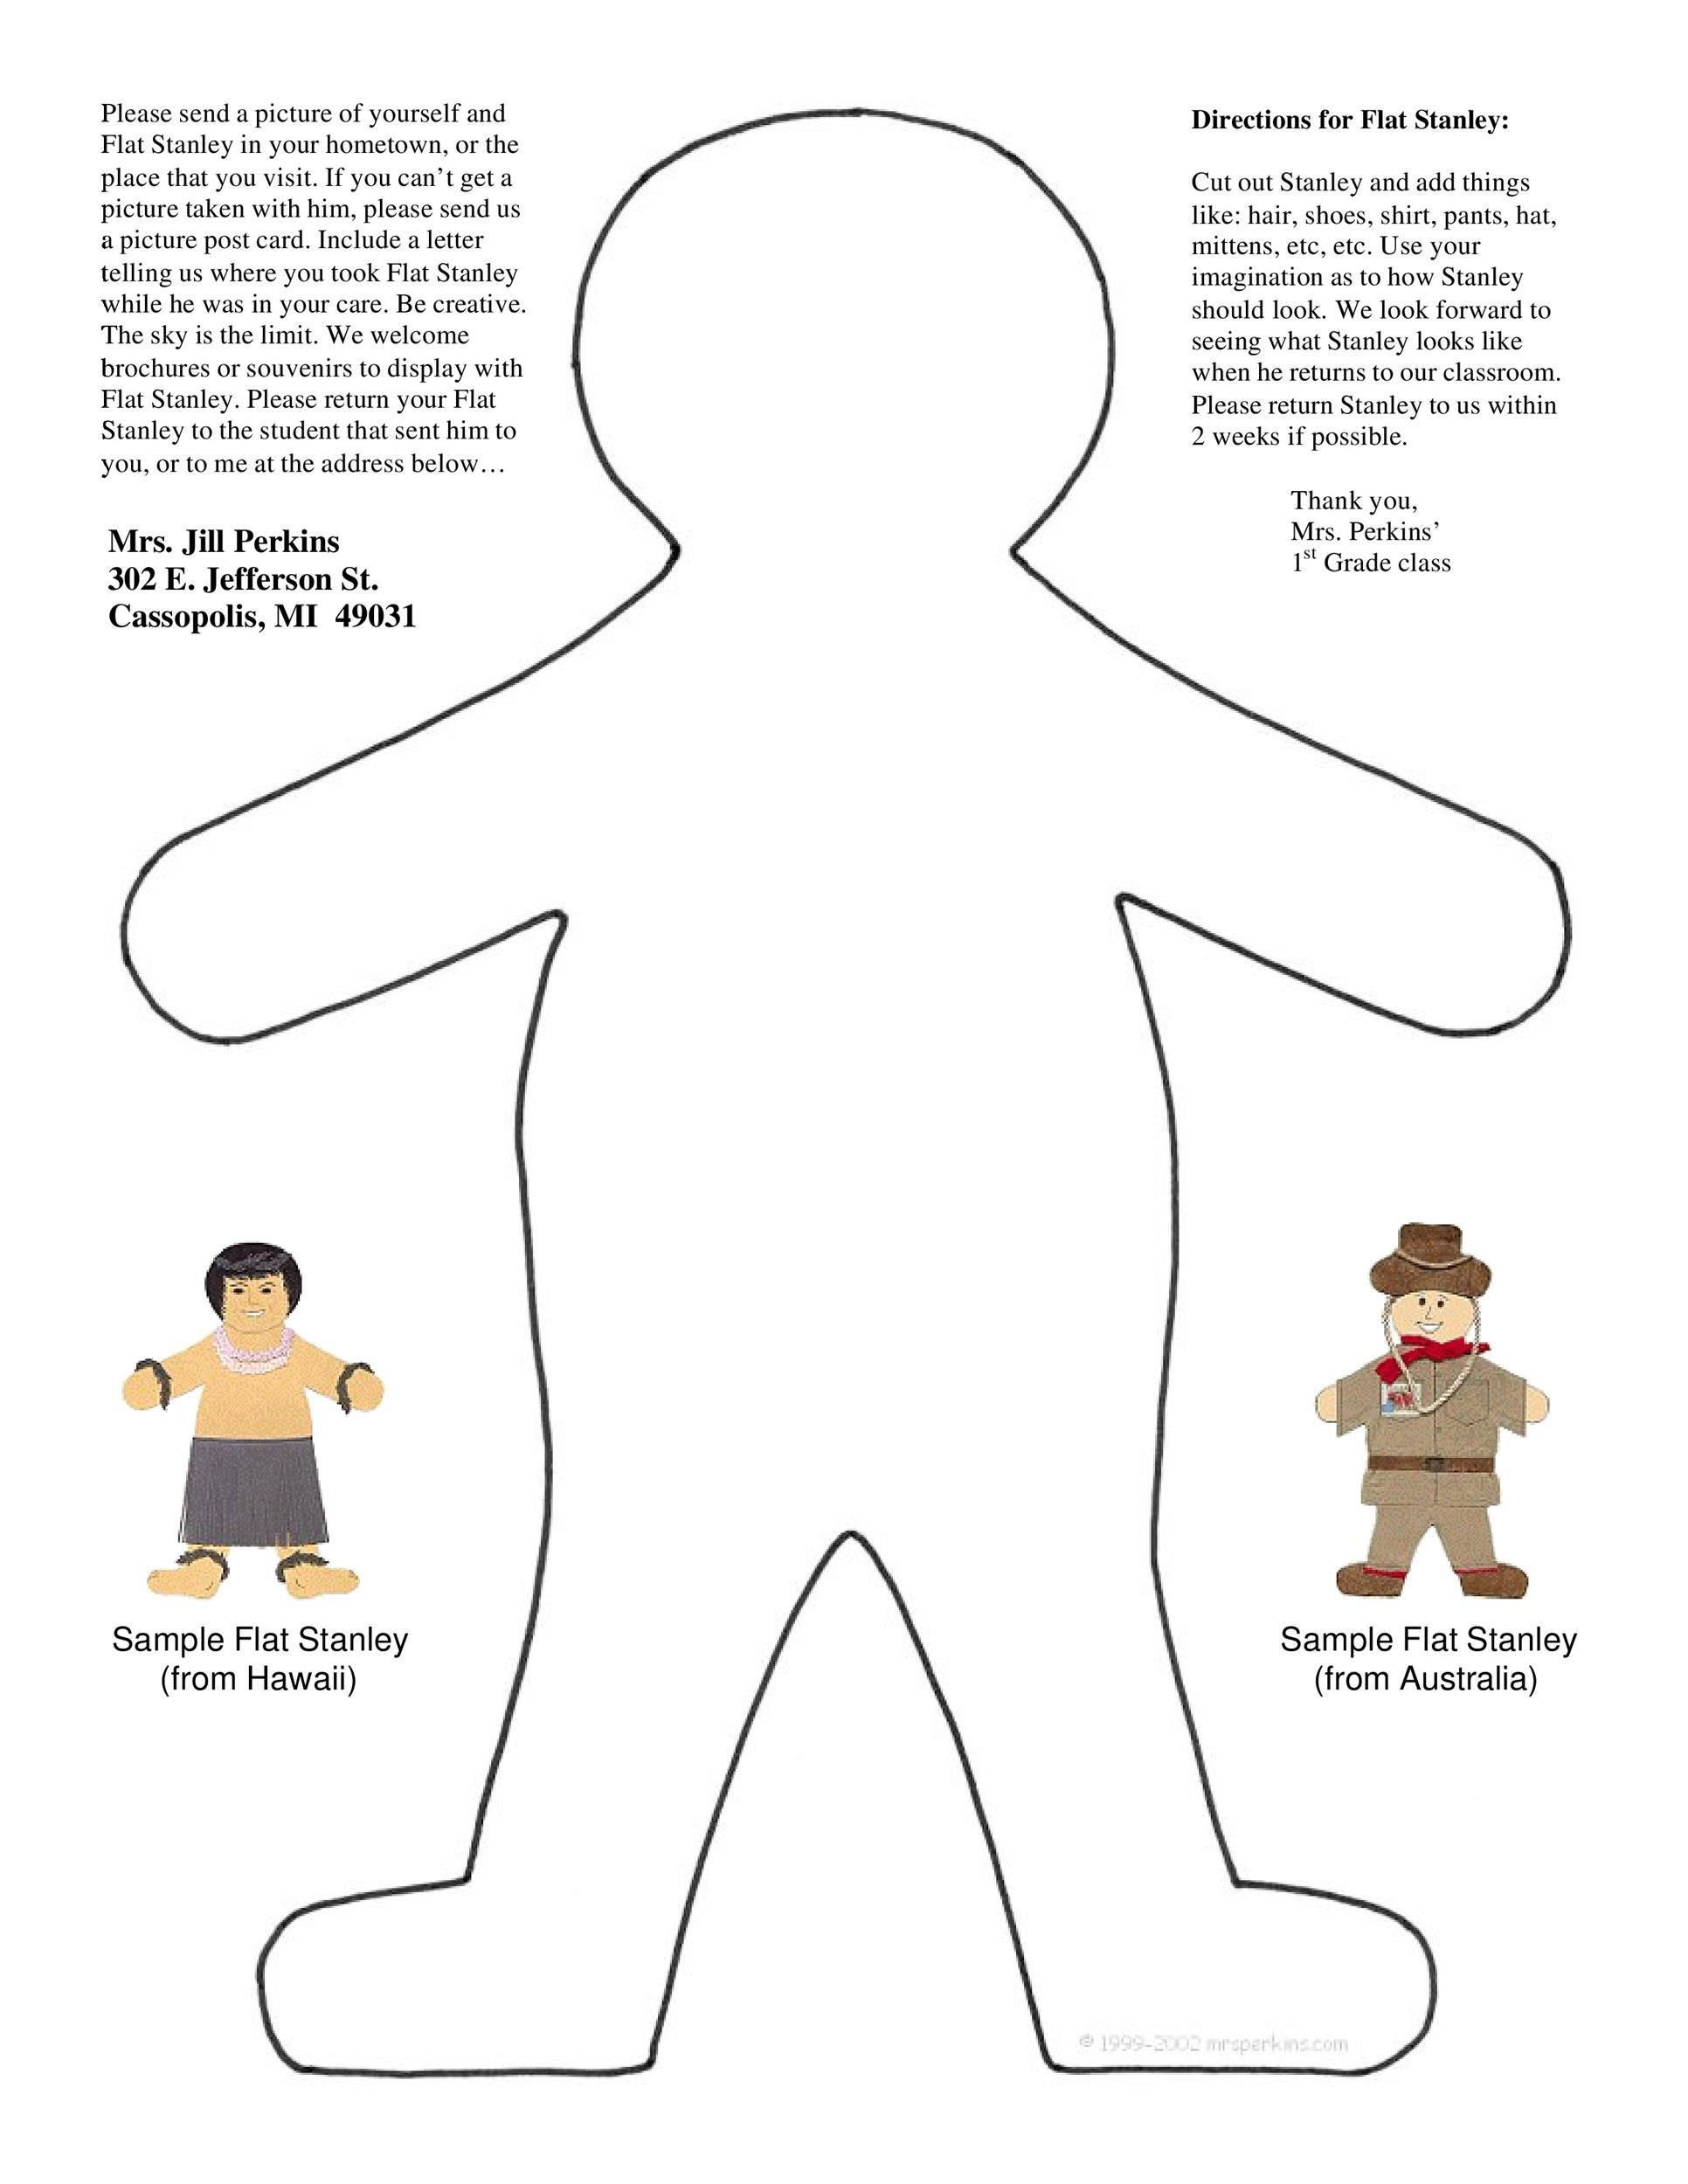 photo regarding Thing 1 and Thing 2 Printable Cutouts known as 37 Flat Stanley Templates Letter Illustrations ᐅ Template Lab